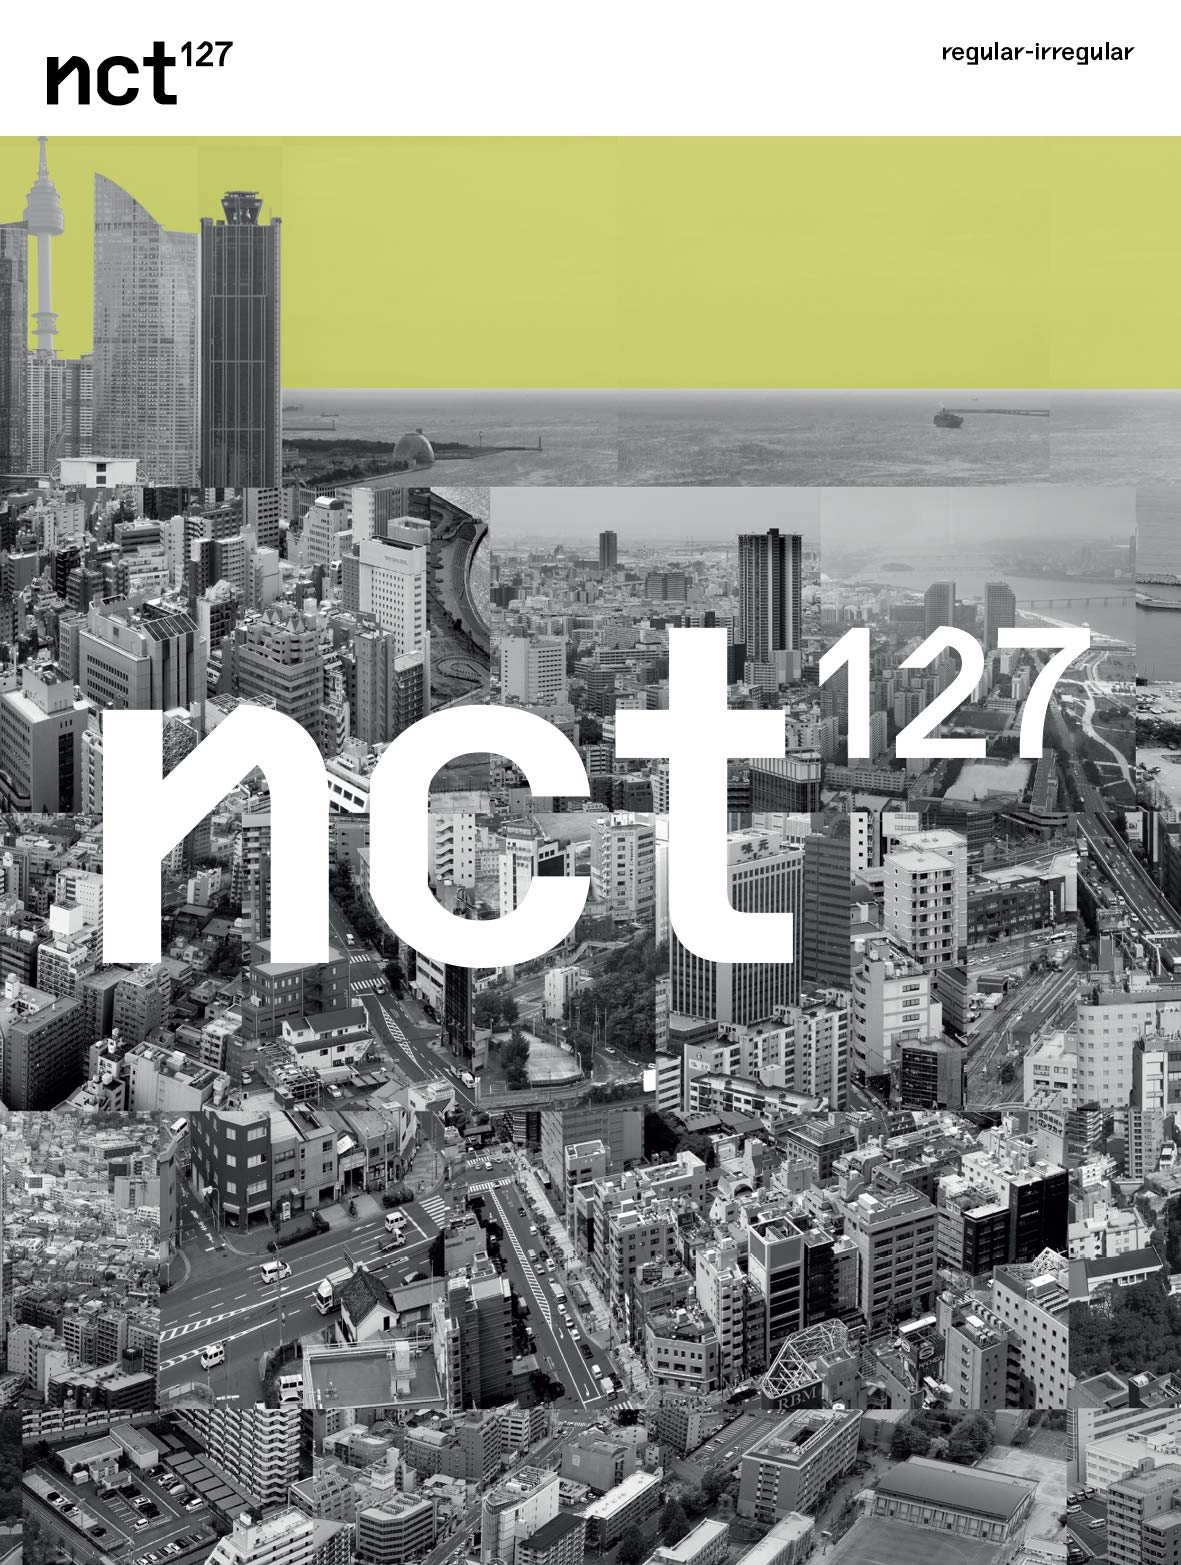 CD : NCT 127 - Nct#127 Regular-irregular (regular Version) (With Book, Poster, Postcard, Photos)